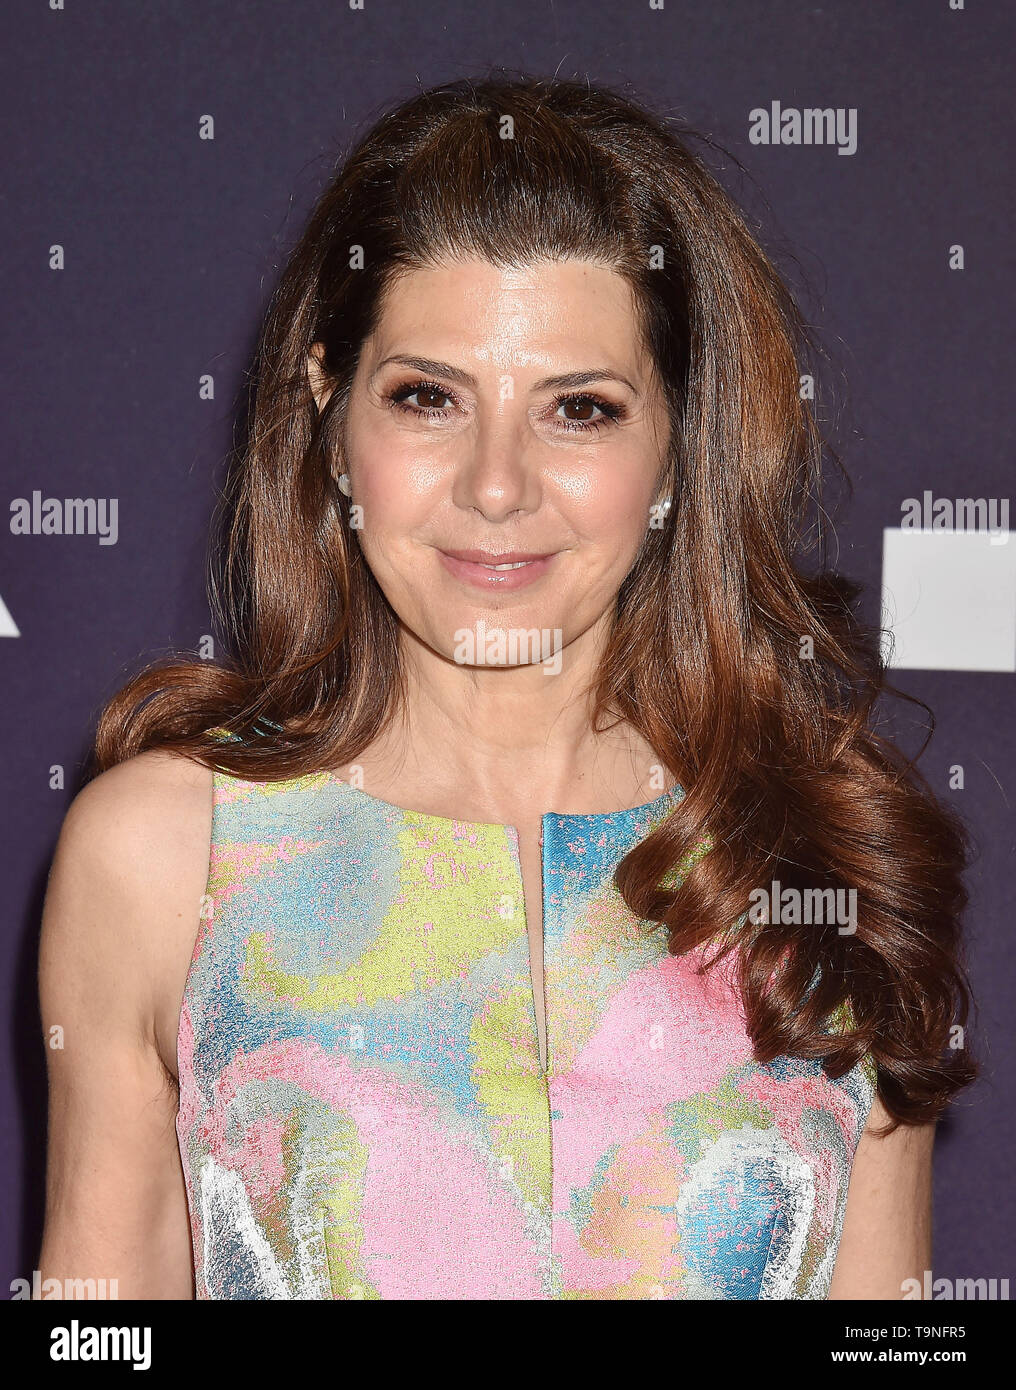 LOS ANGELES, CA - MAY 18: Marisa Tomei  attends the MOCA Benefit 2019 at The Geffen Contemporary at MOCA on May 18, 2019 in Los Angeles, California. - Stock Image